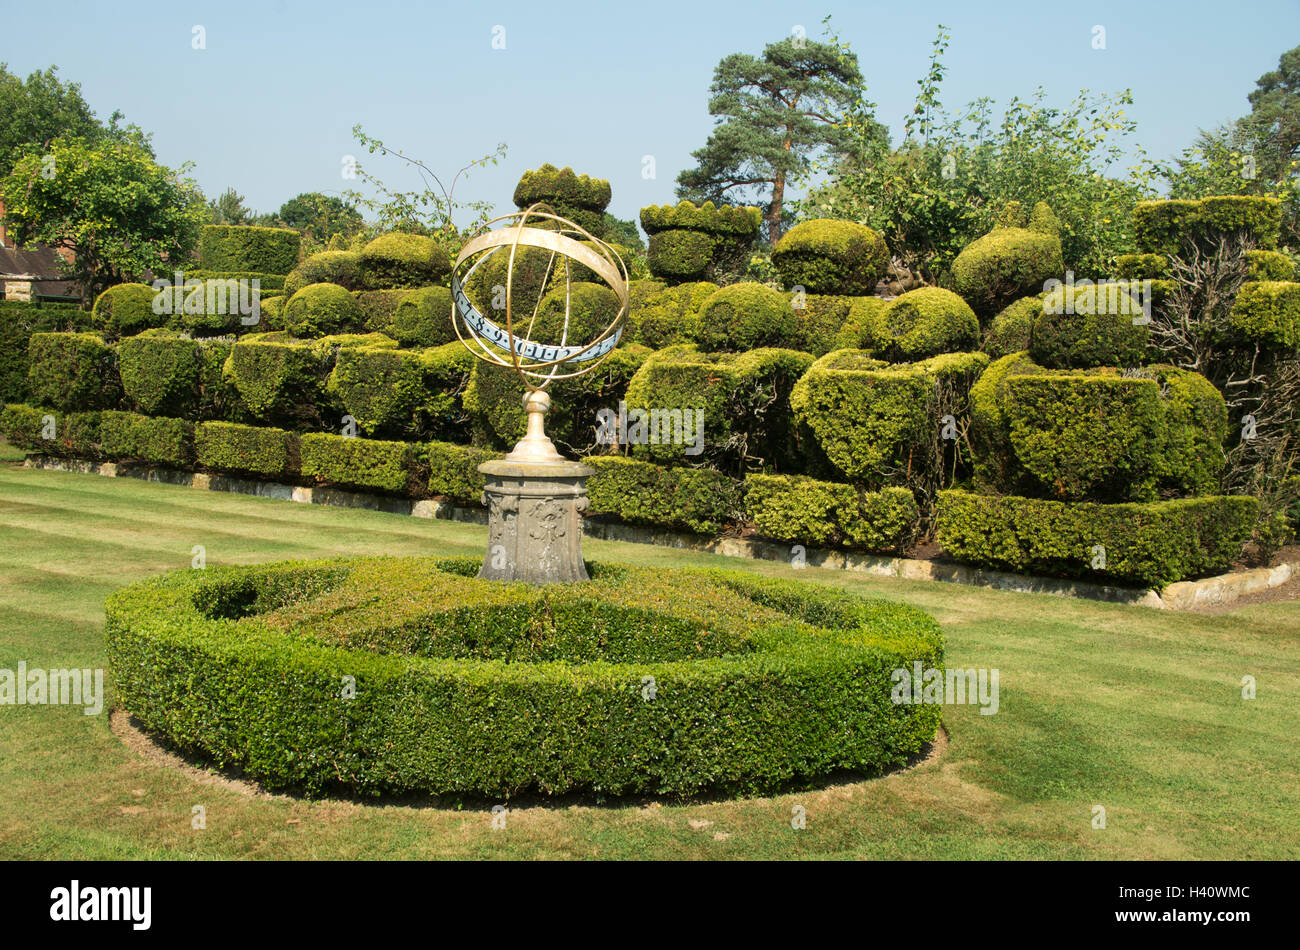 Ordinaire Heaver Castle, Chess Garden, Kent, Topiary Chess Set With Armillary Sphere  Sundial